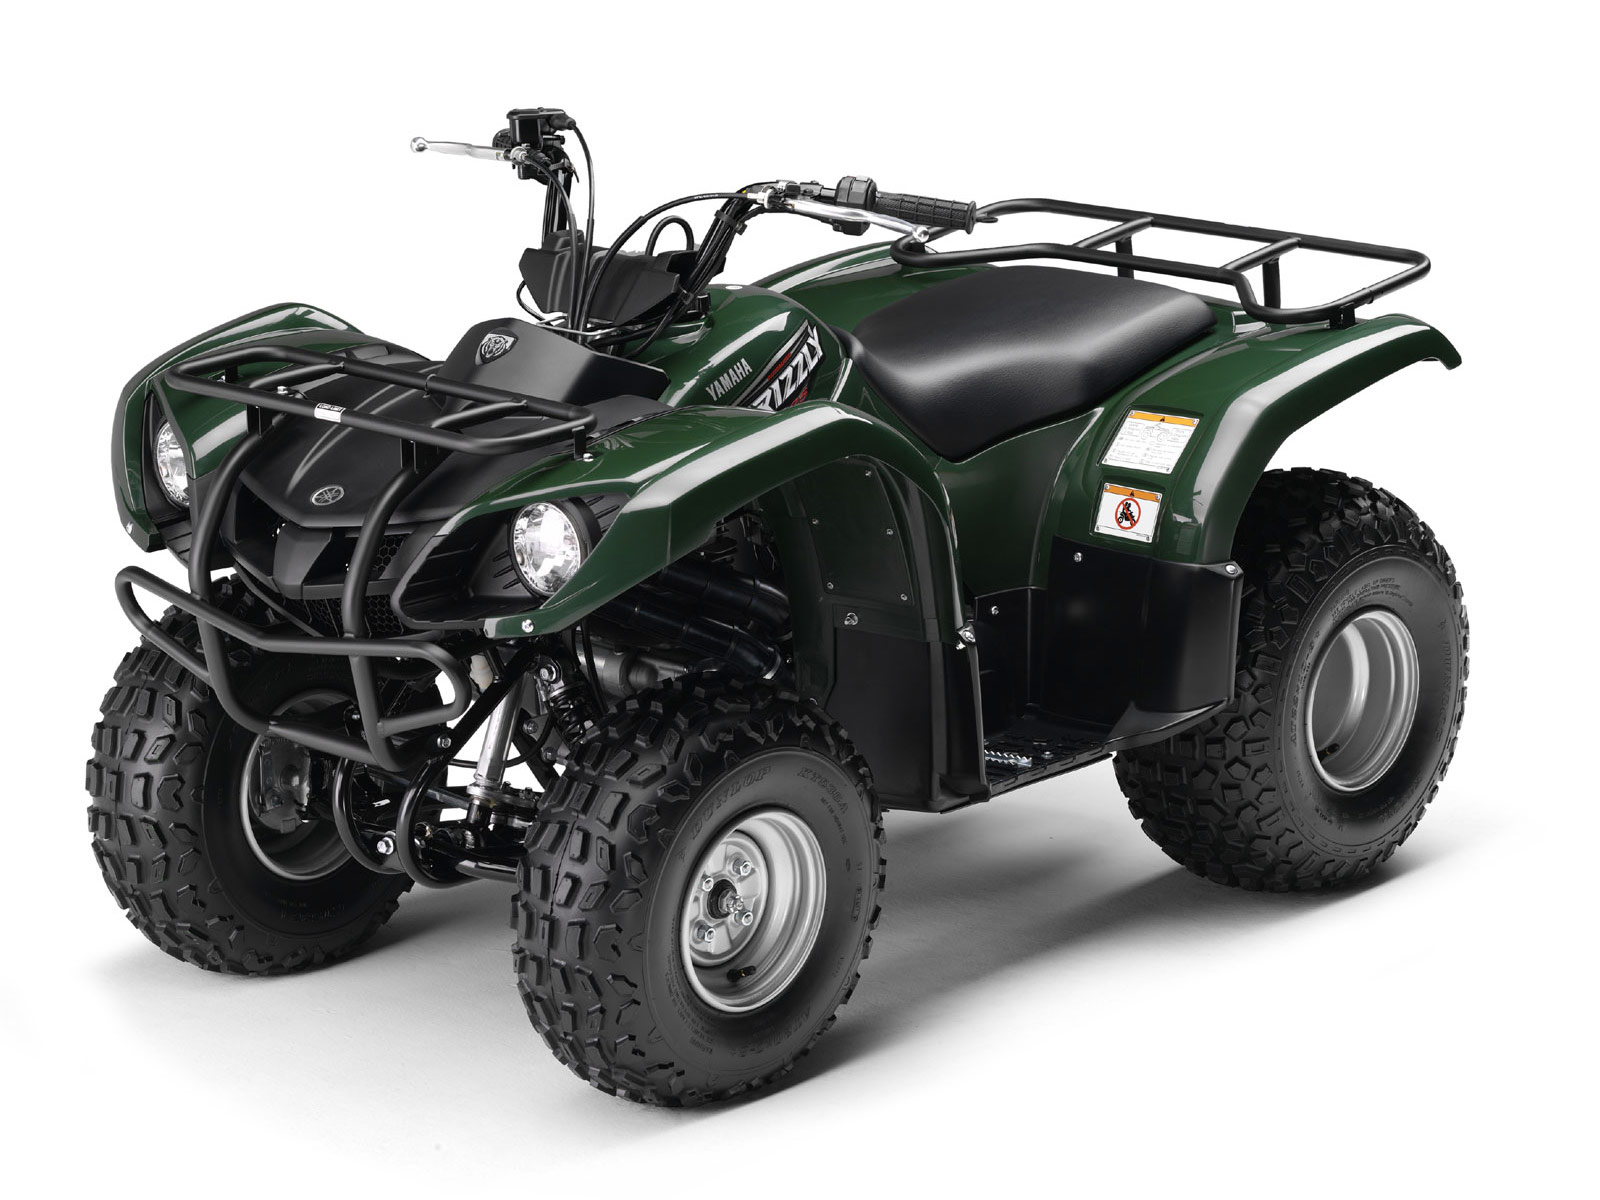 Yamaha Atv Wallpaper 7399 Hd Wallpapers in Bikes   Imagescicom 1600x1200